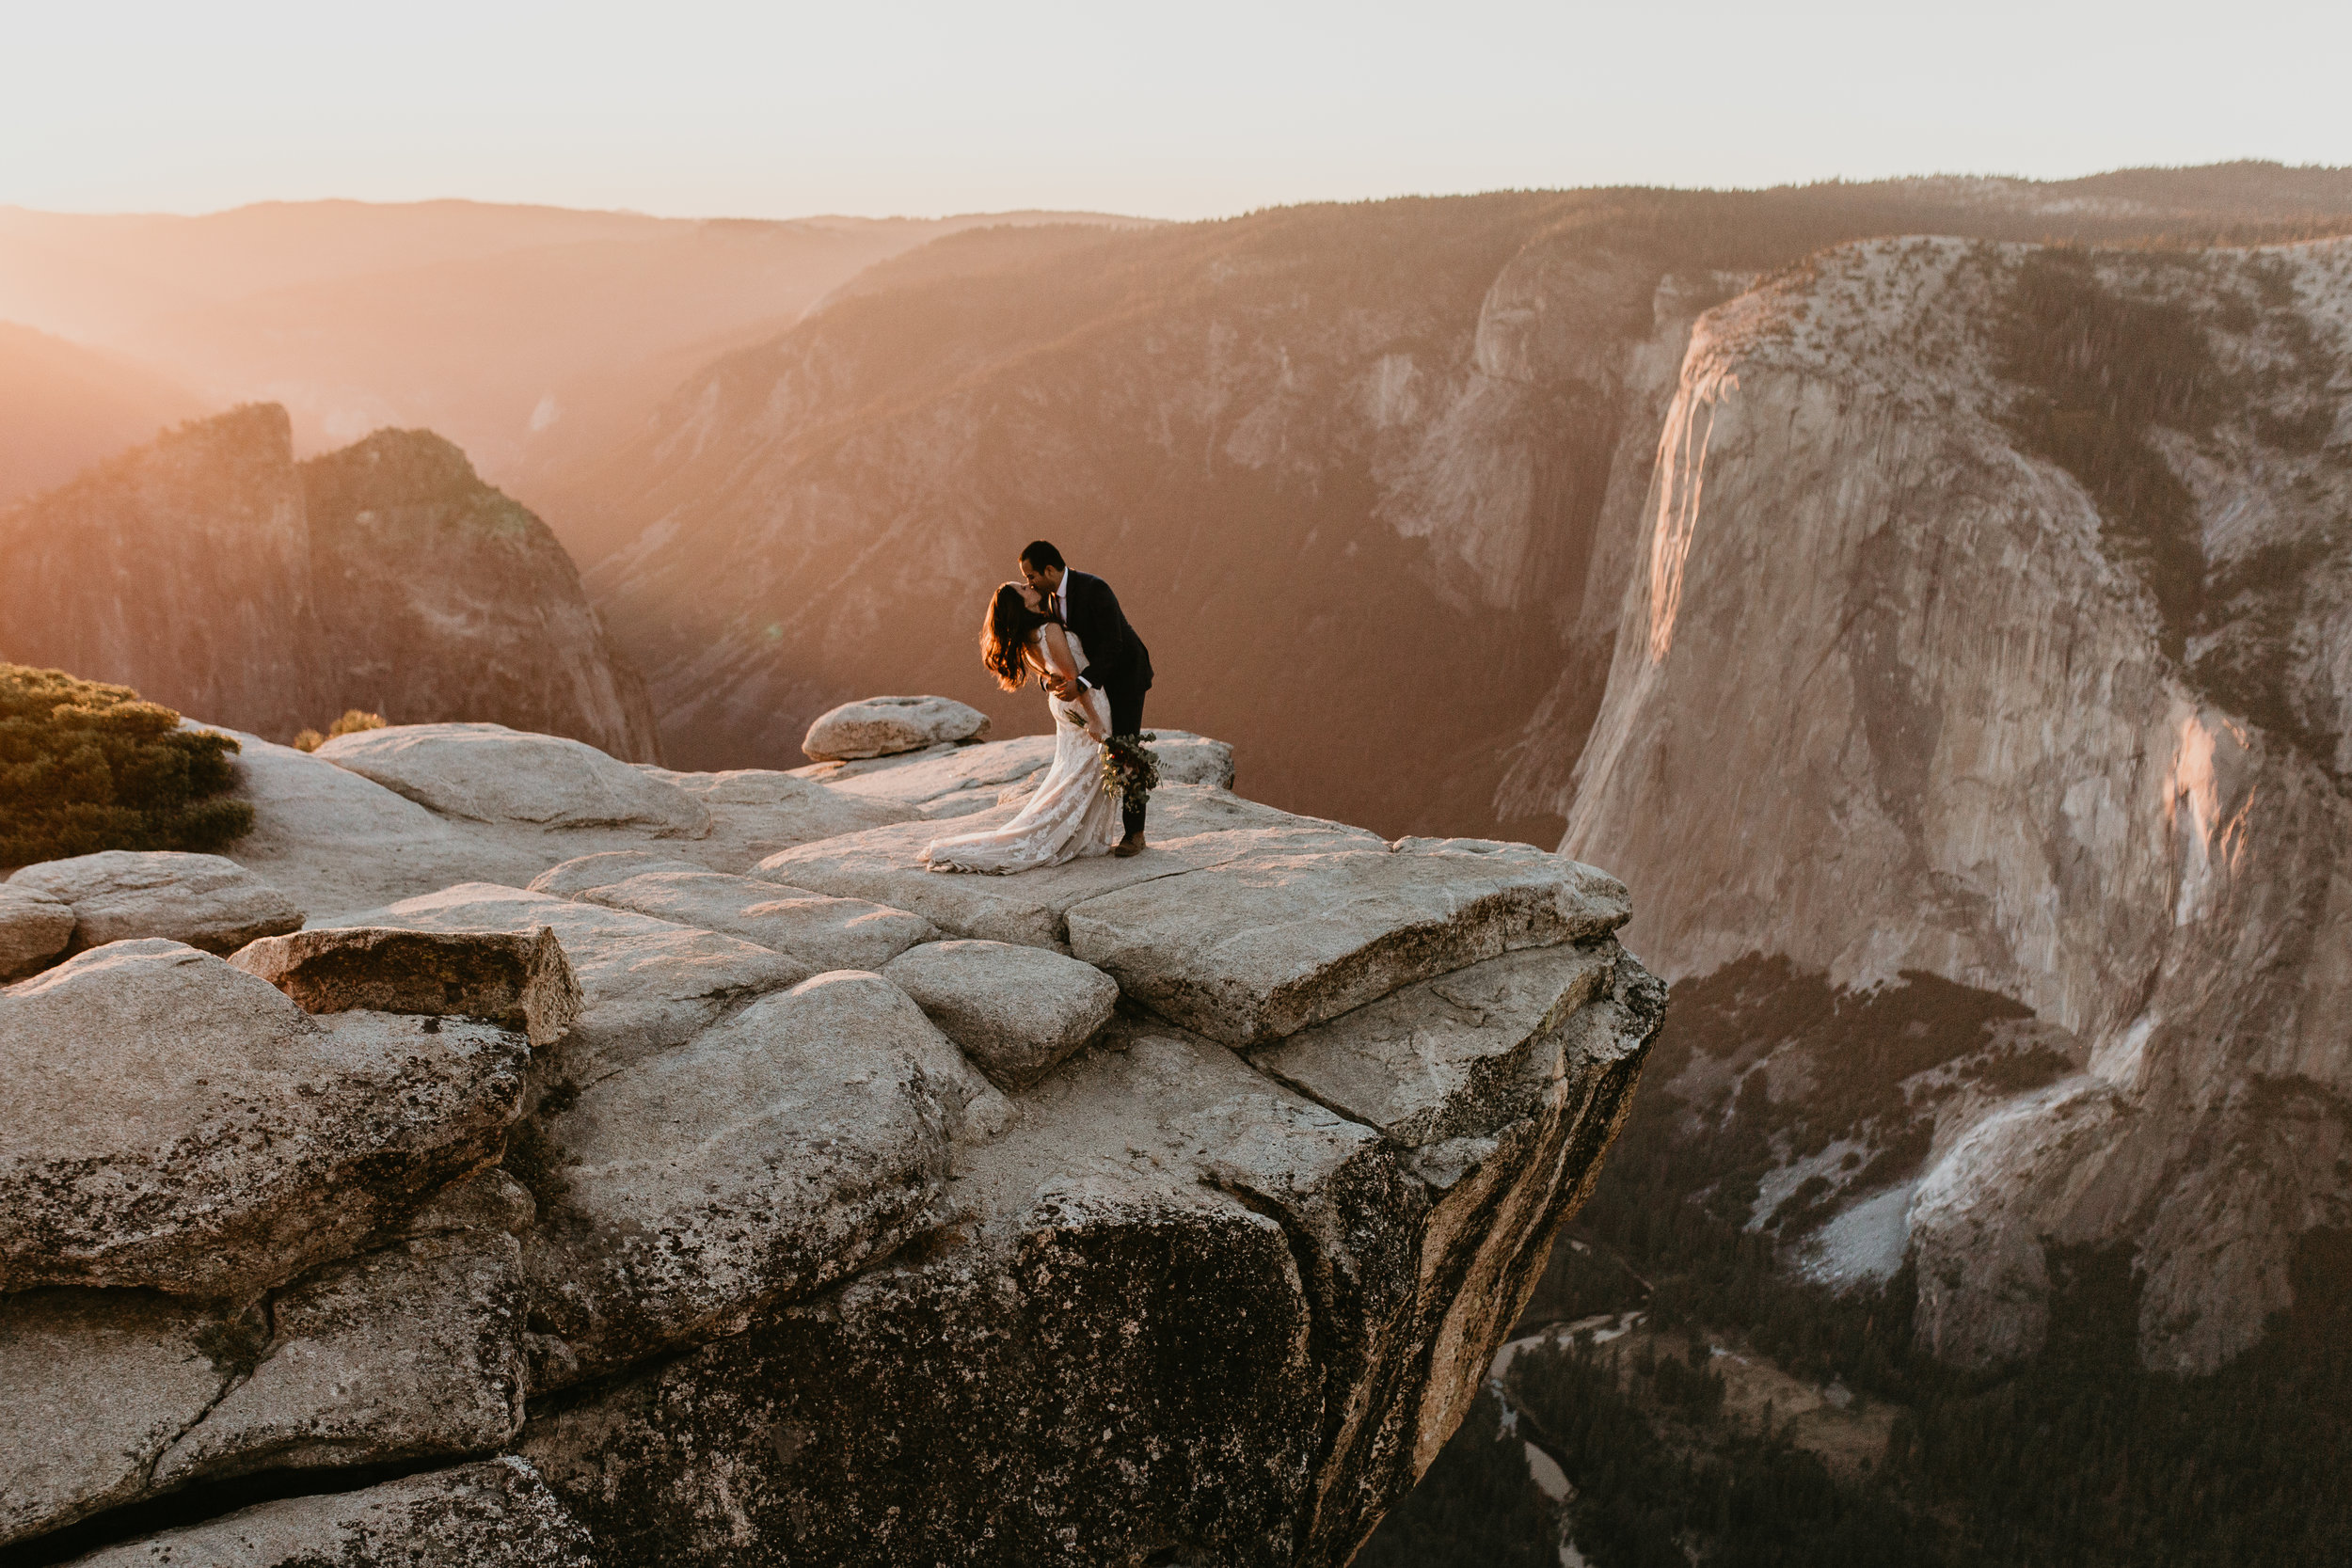 nicole-daacke-photography-yosemite-national-park-elopement-at-taft-point-tunnel-view-yosemite-intimate-wedding-fall-sunset-adventure-elopement-photographer-80.jpg